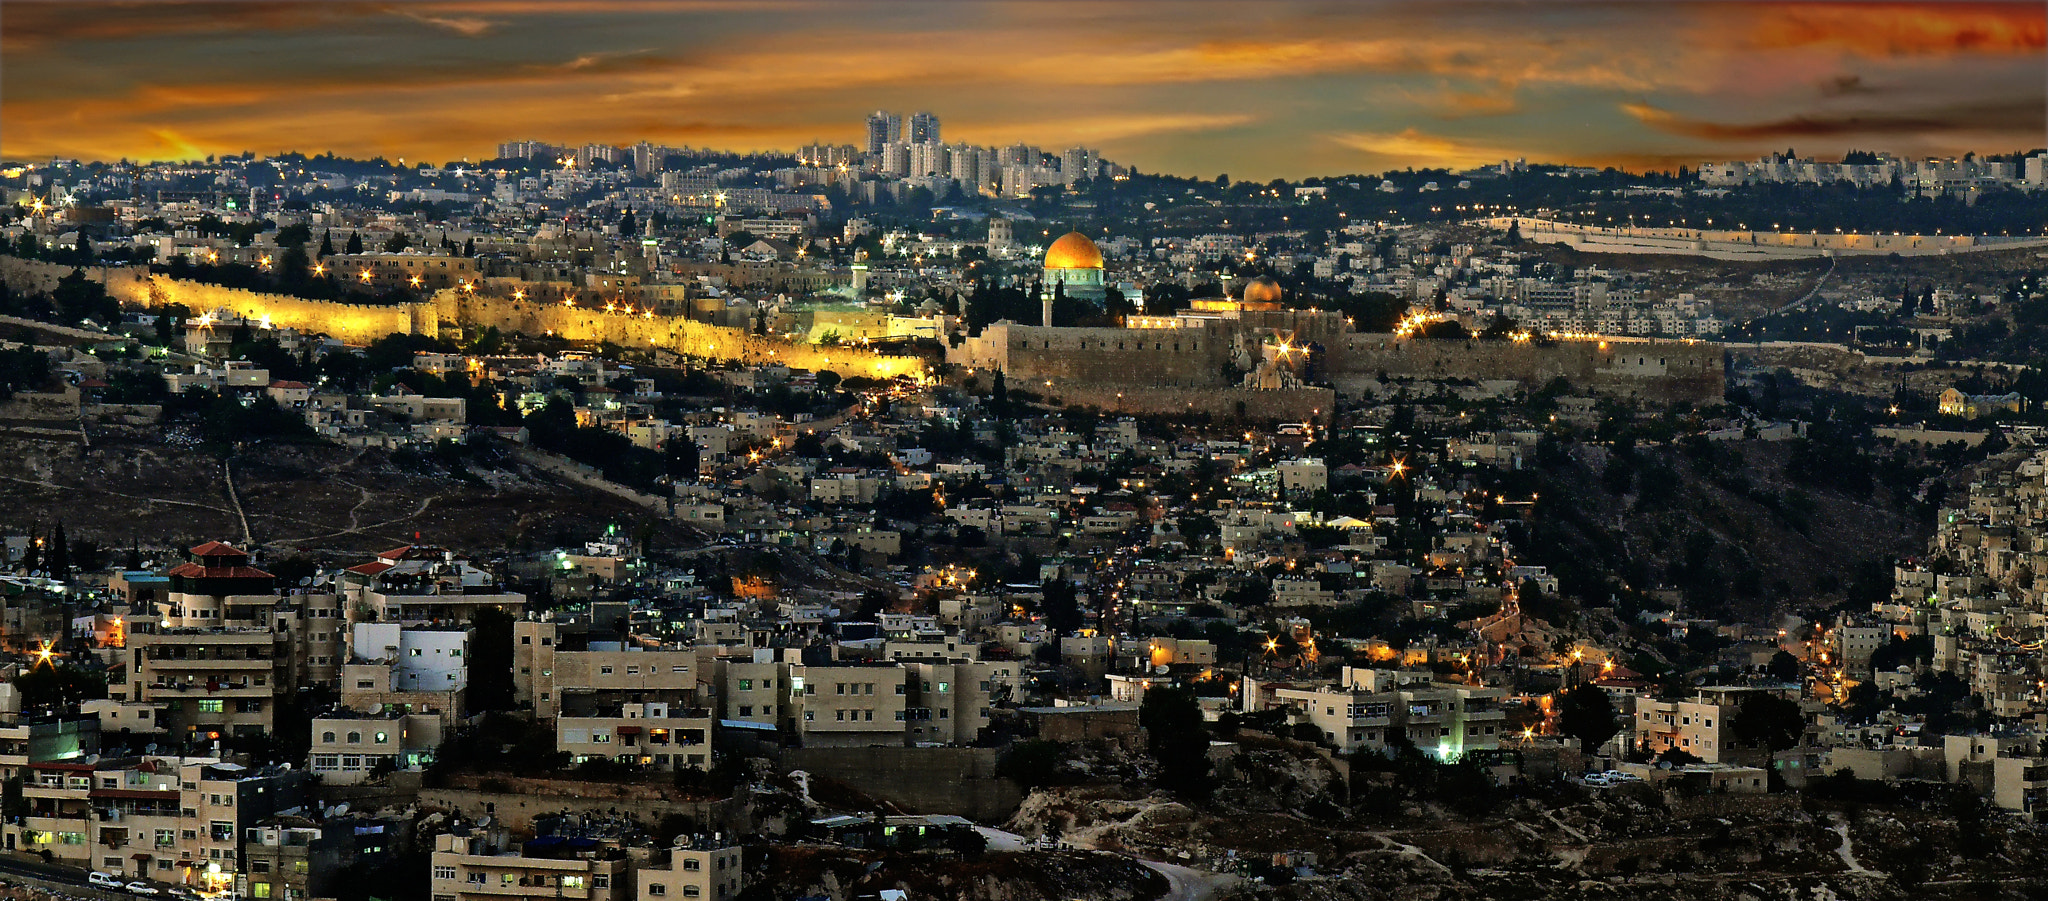 Photograph Jerusalem of gold by Alberto Arochas on 500px